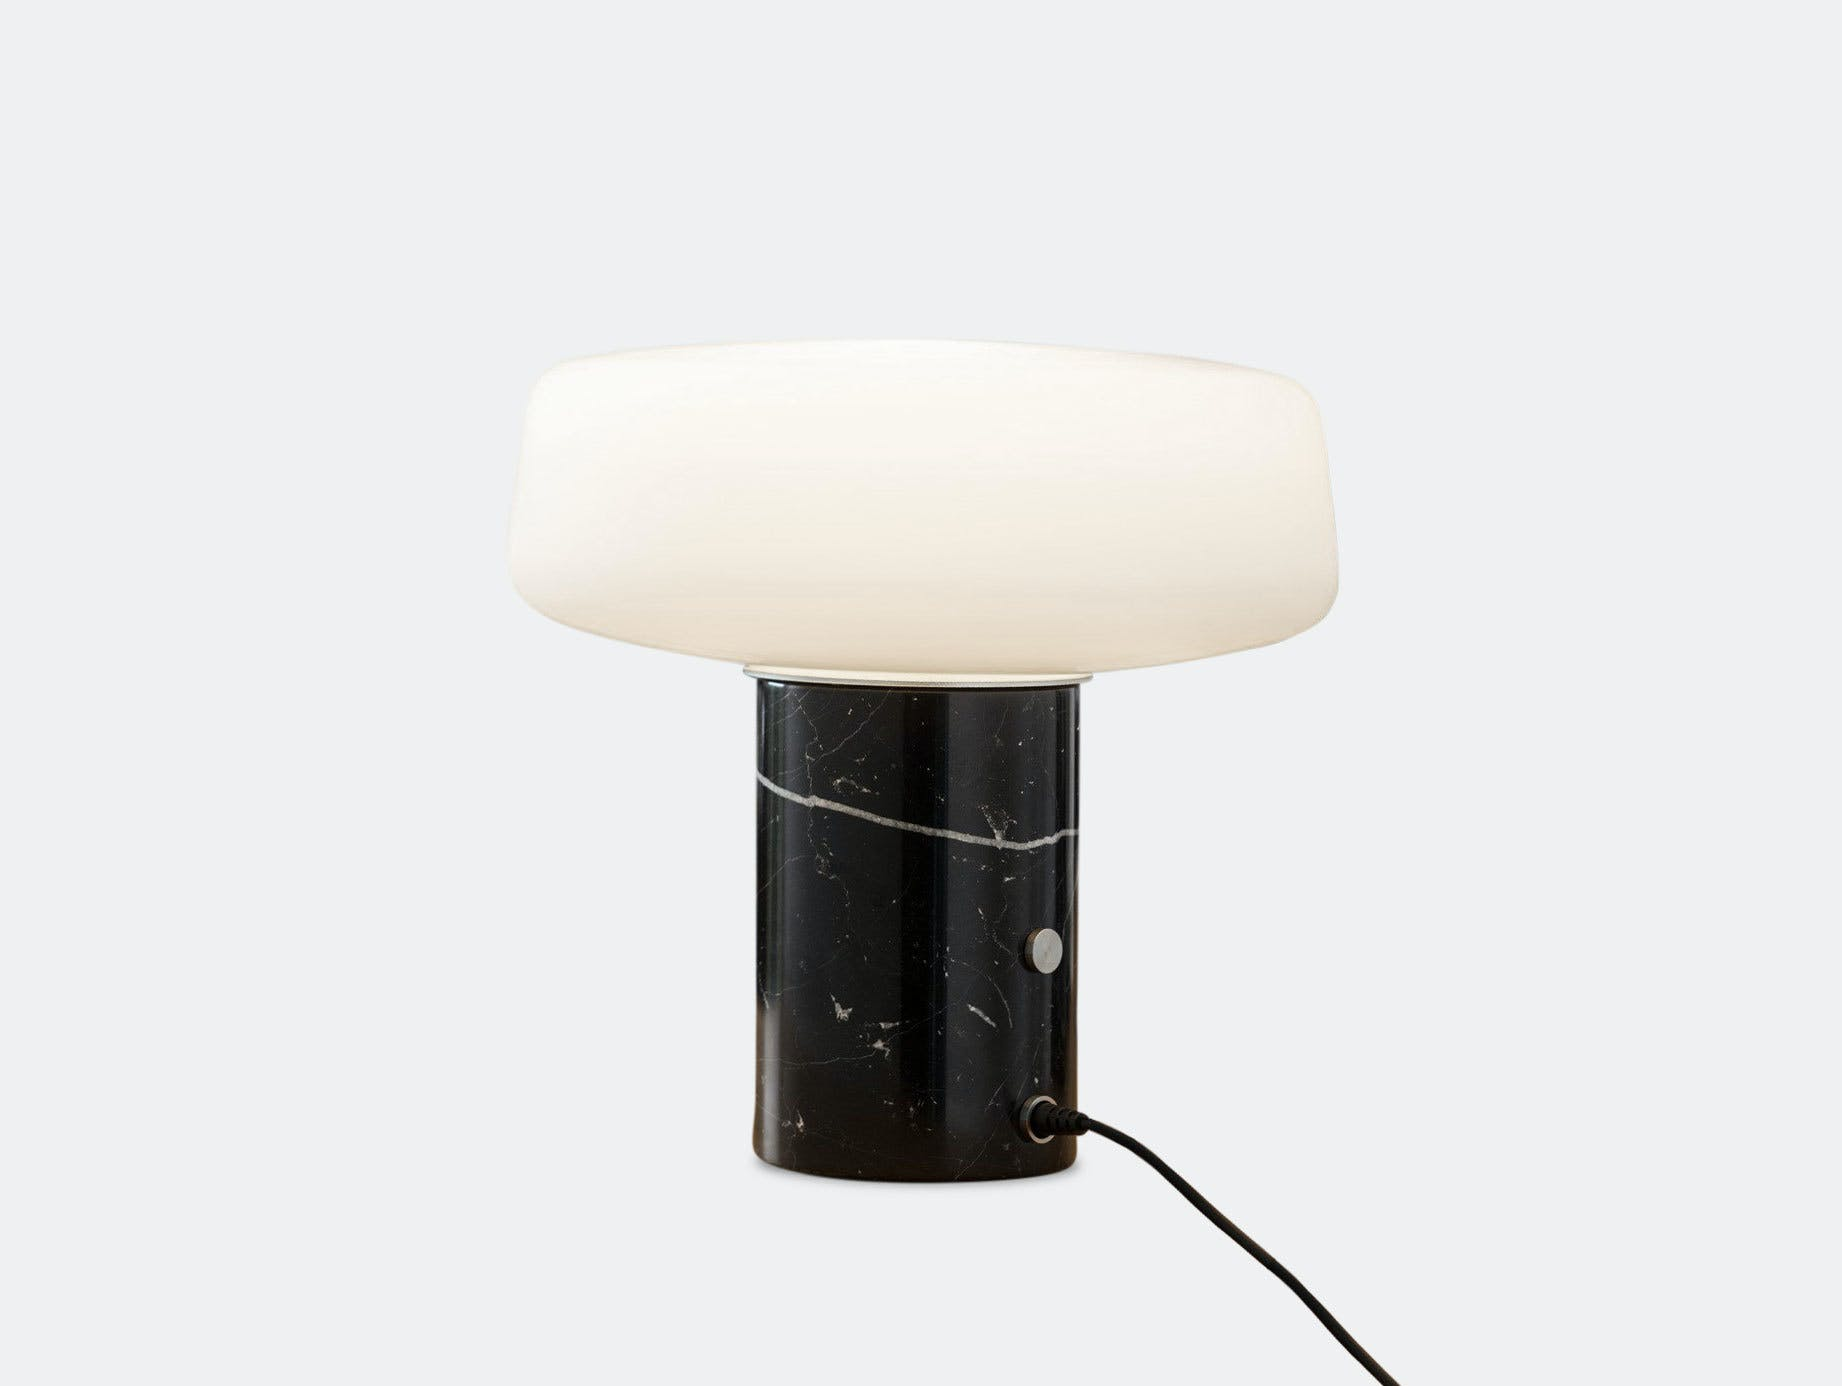 Terence Woodgate Solid Table Light small Black Nero Marquina Marble